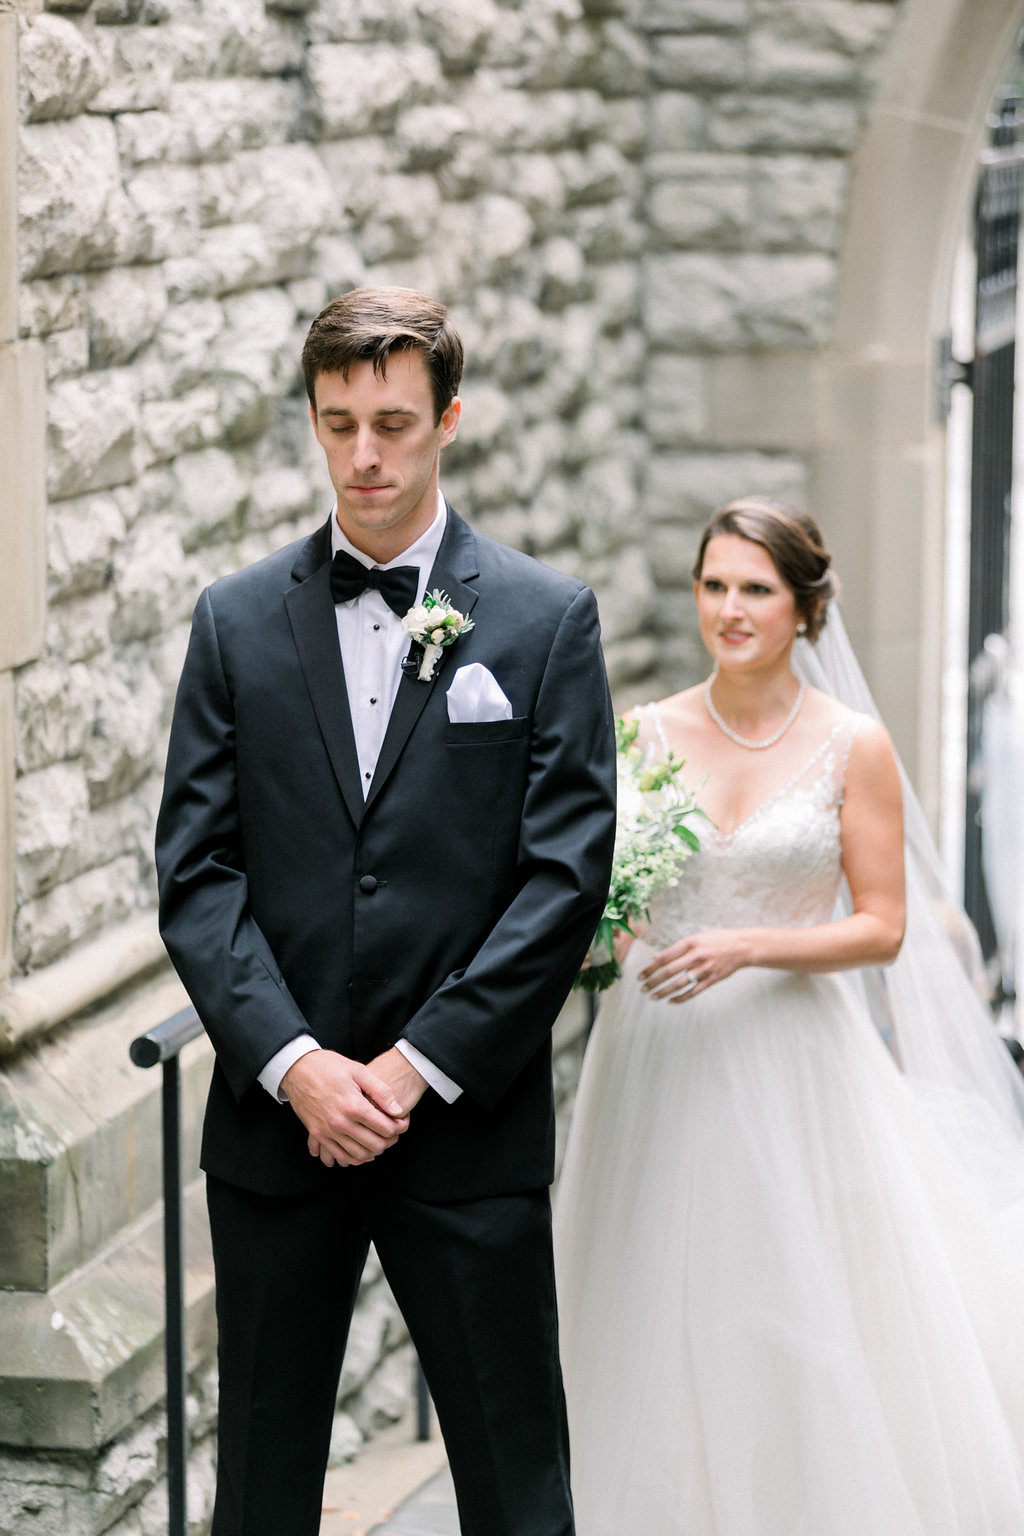 Ault Park Wedding - First Look